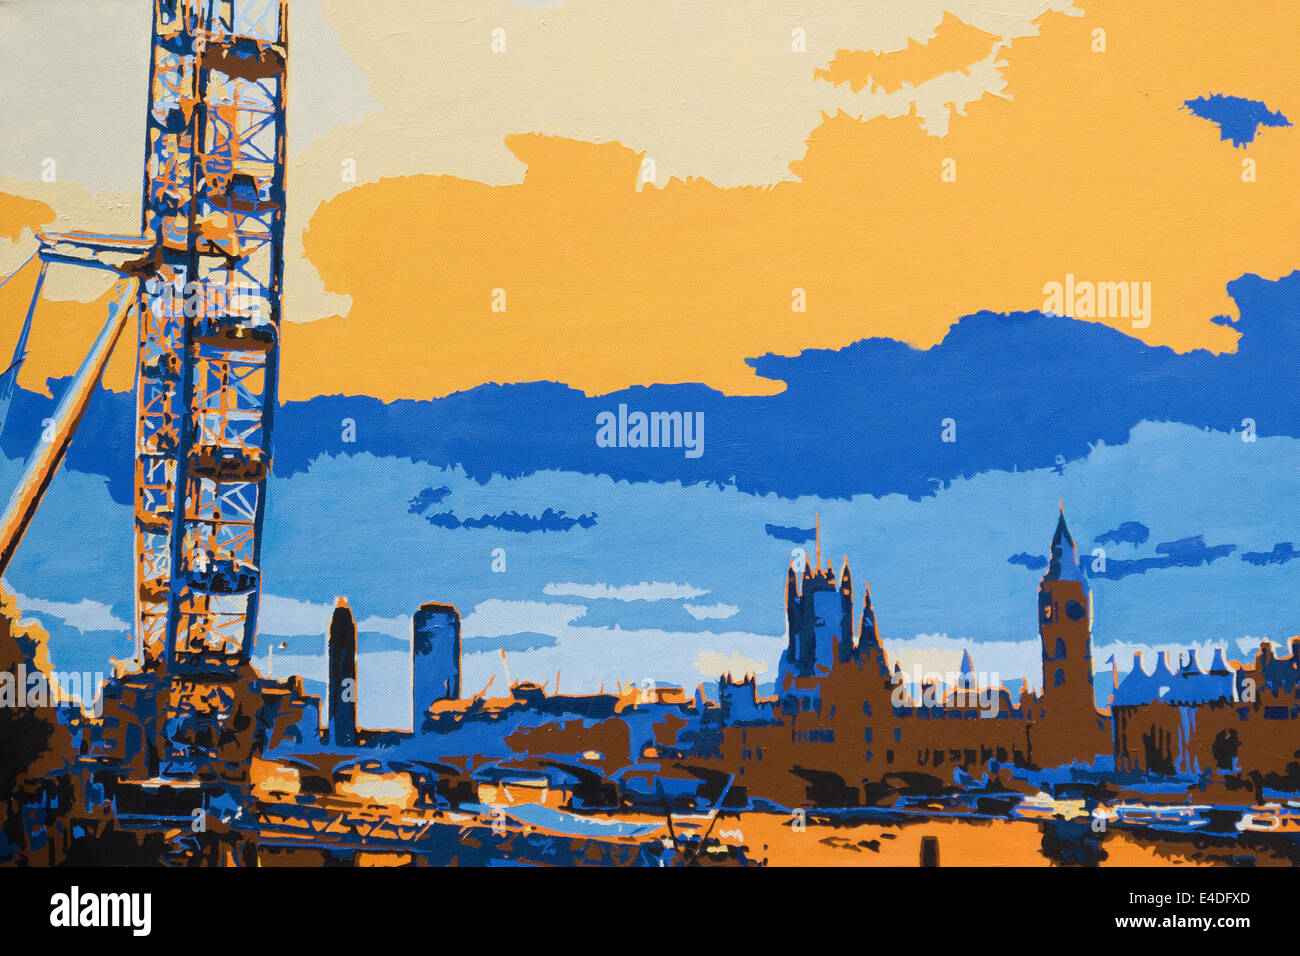 London Acrylic Painting Art Artwork Cityscape Representative Art High Resolution Stock Photography And Images Alamy